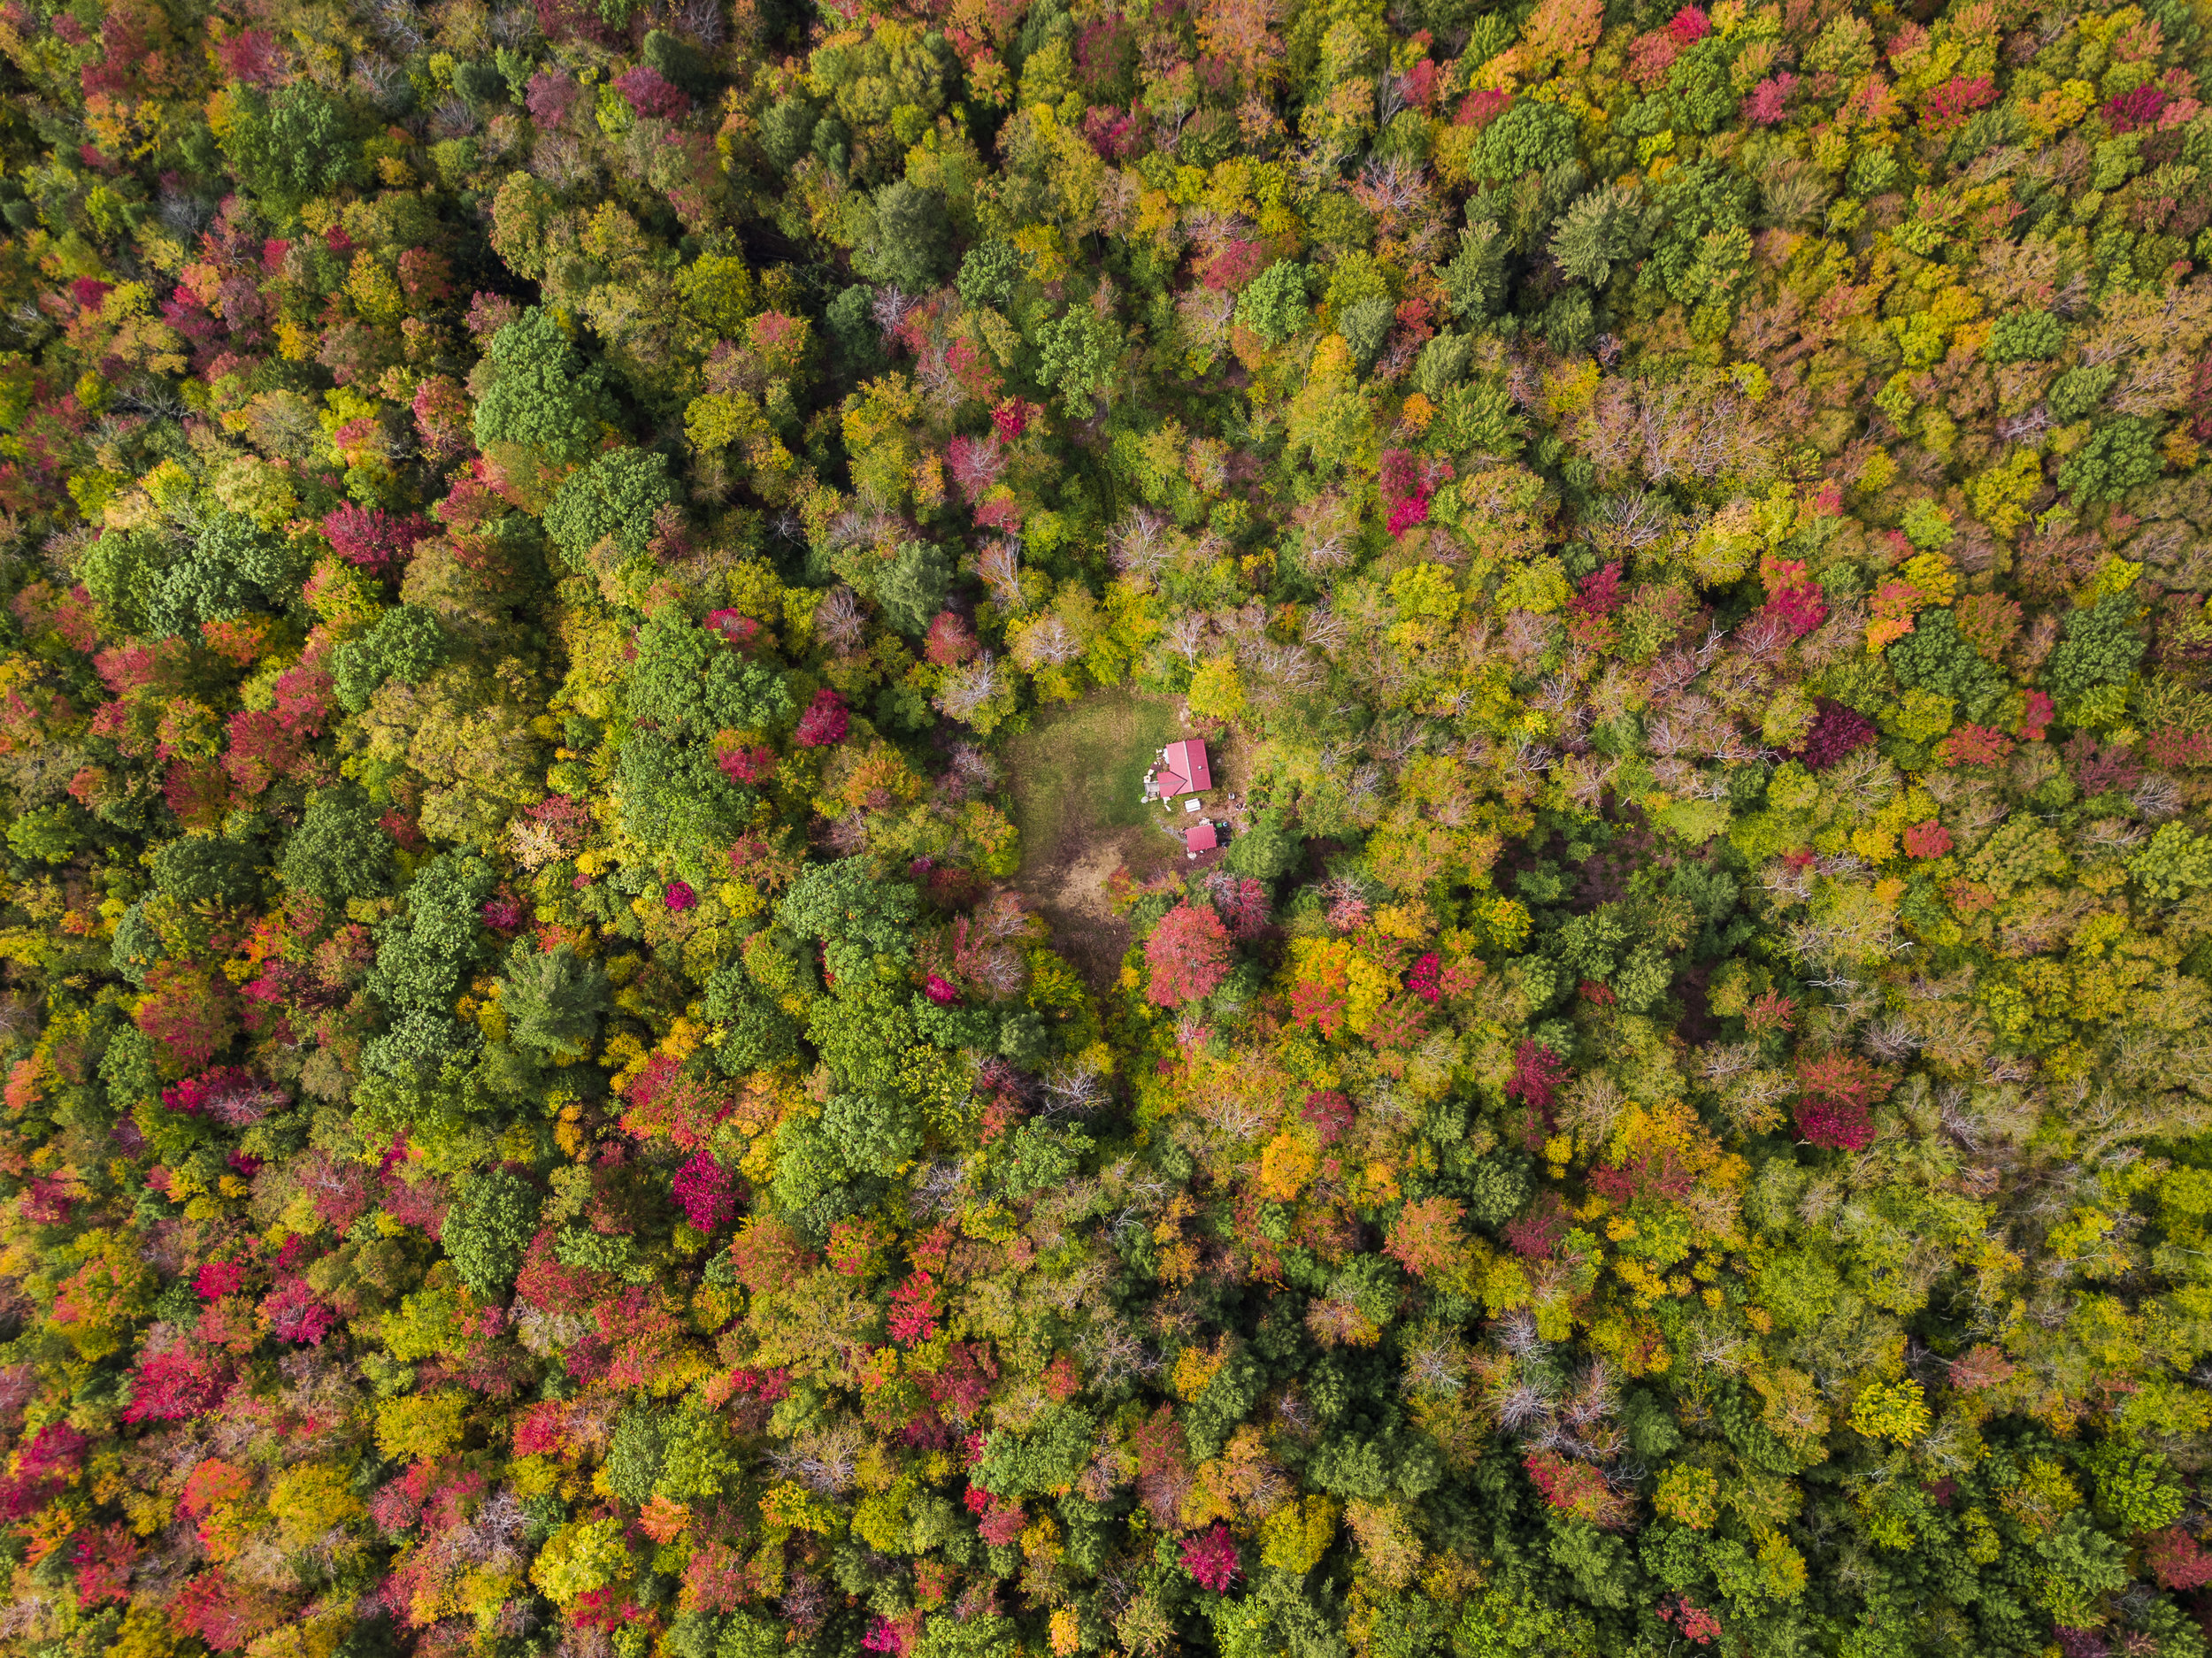 Fall Foliage Drone Photos (1 of 4).jpg